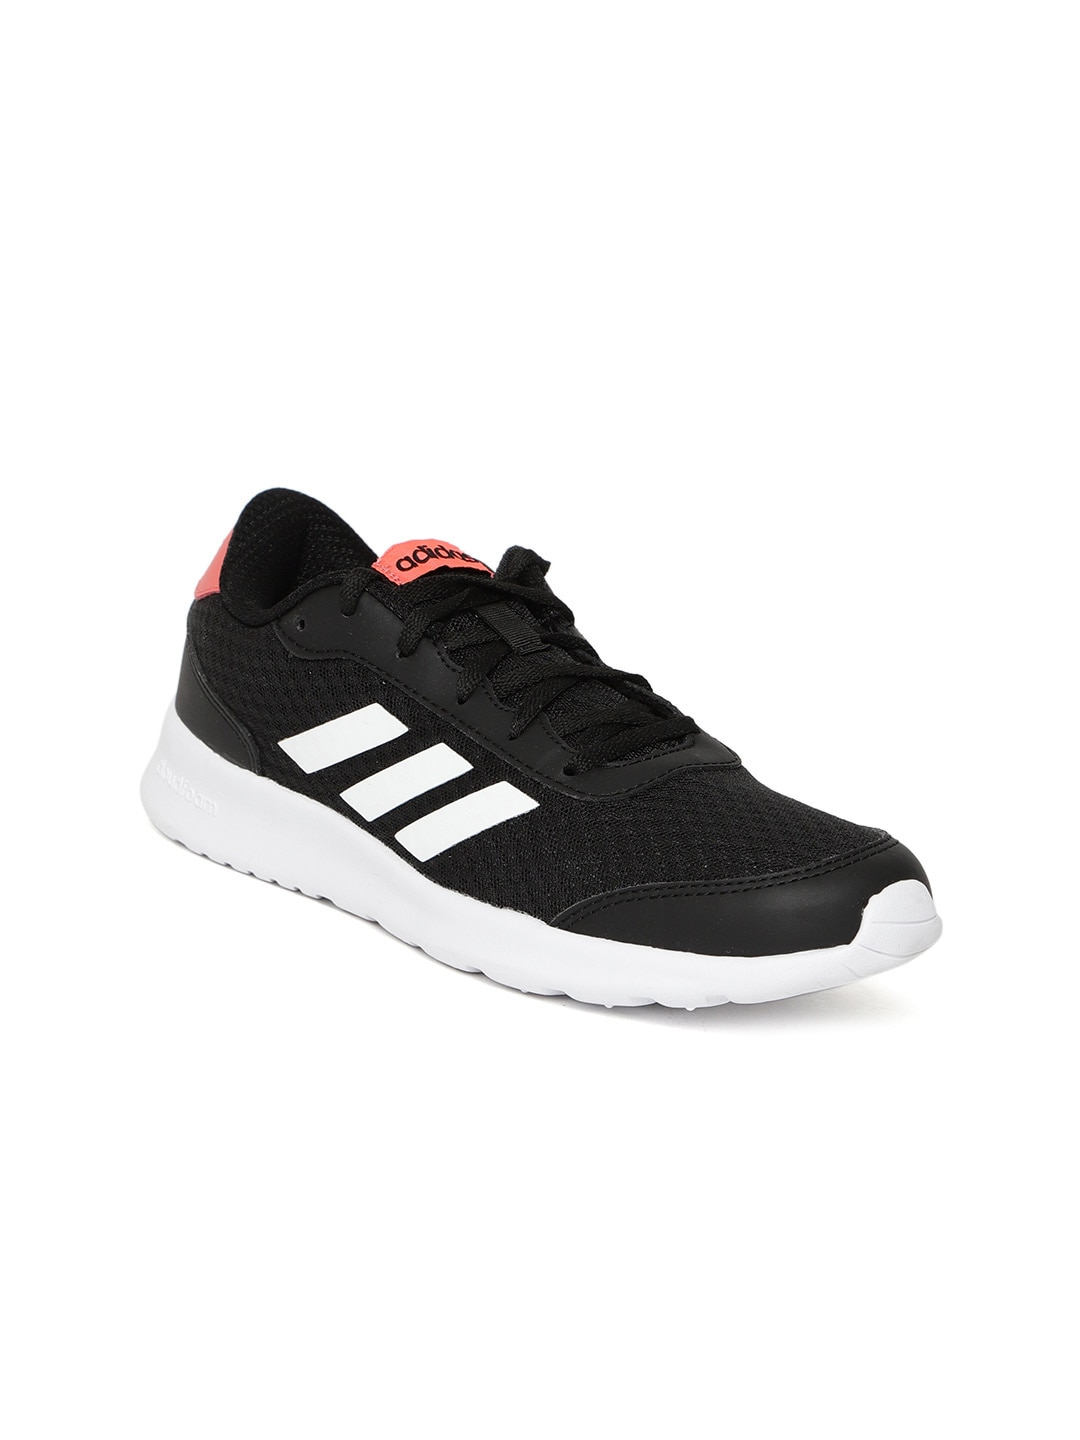 5570ec105 Adidas Shoes - Buy Adidas Shoes for Men   Women Online - Myntra